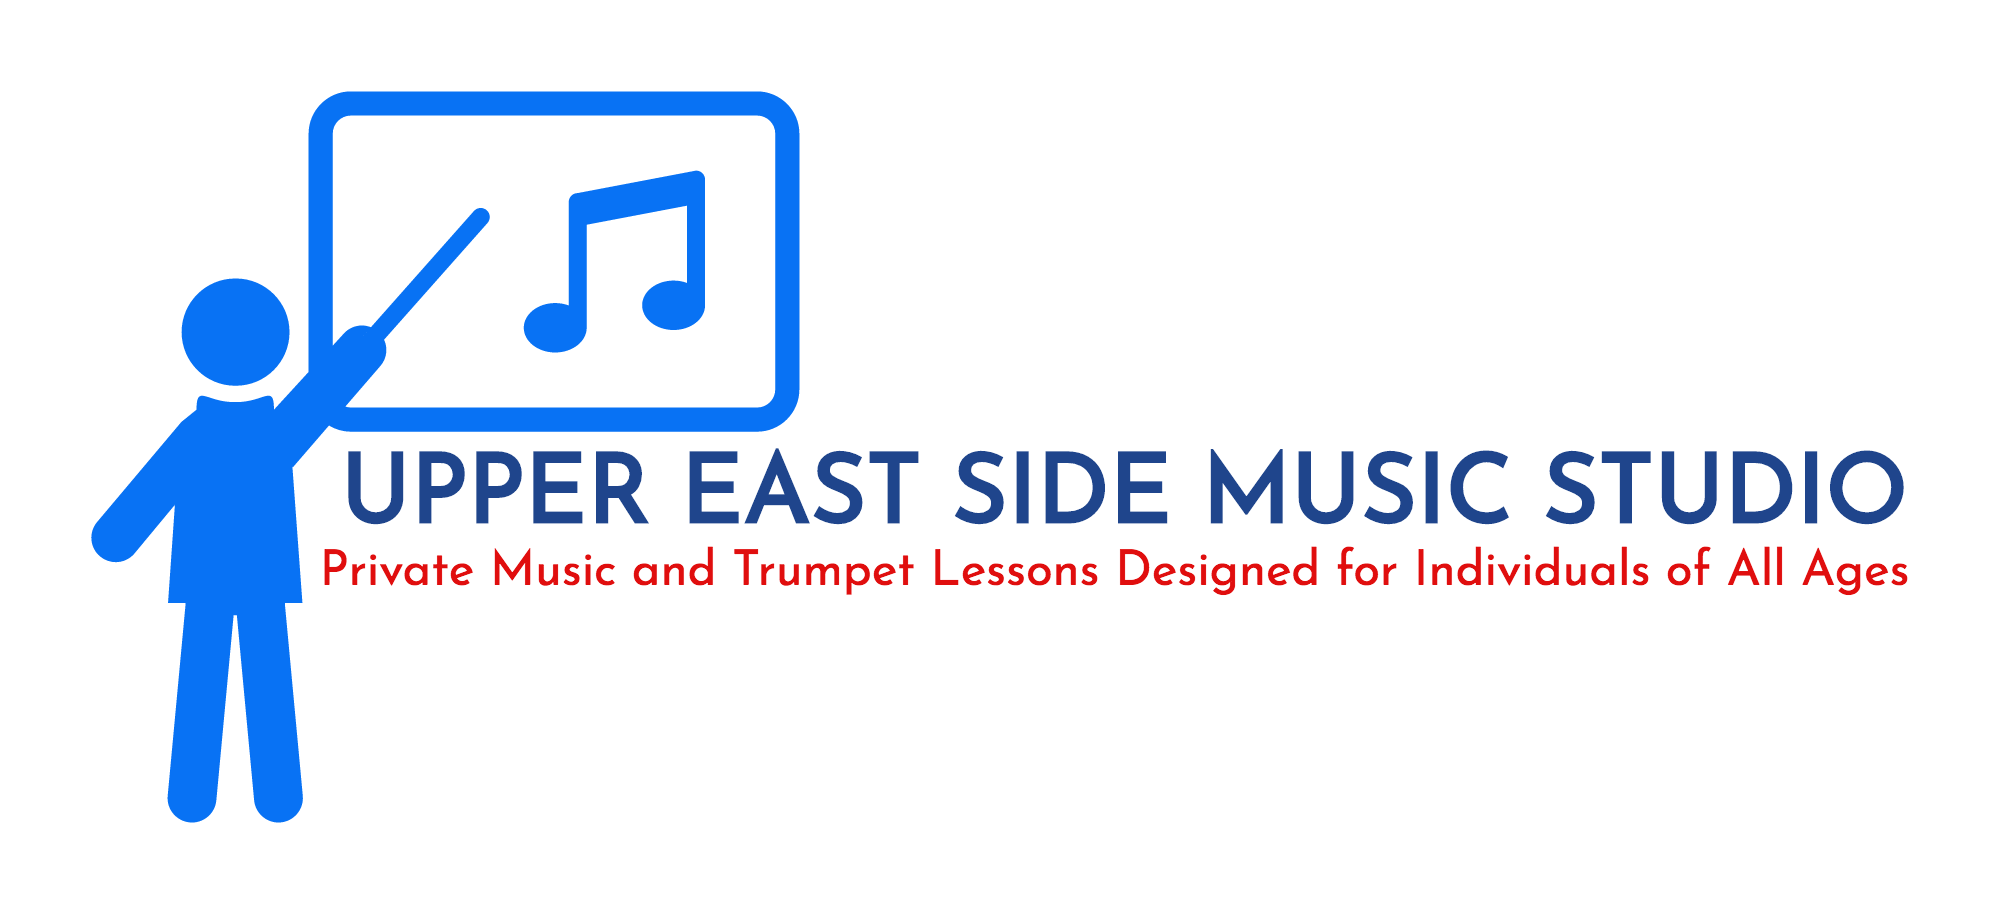 UPPER EAST SIDE MUSIC STUDIO-logo (16).png